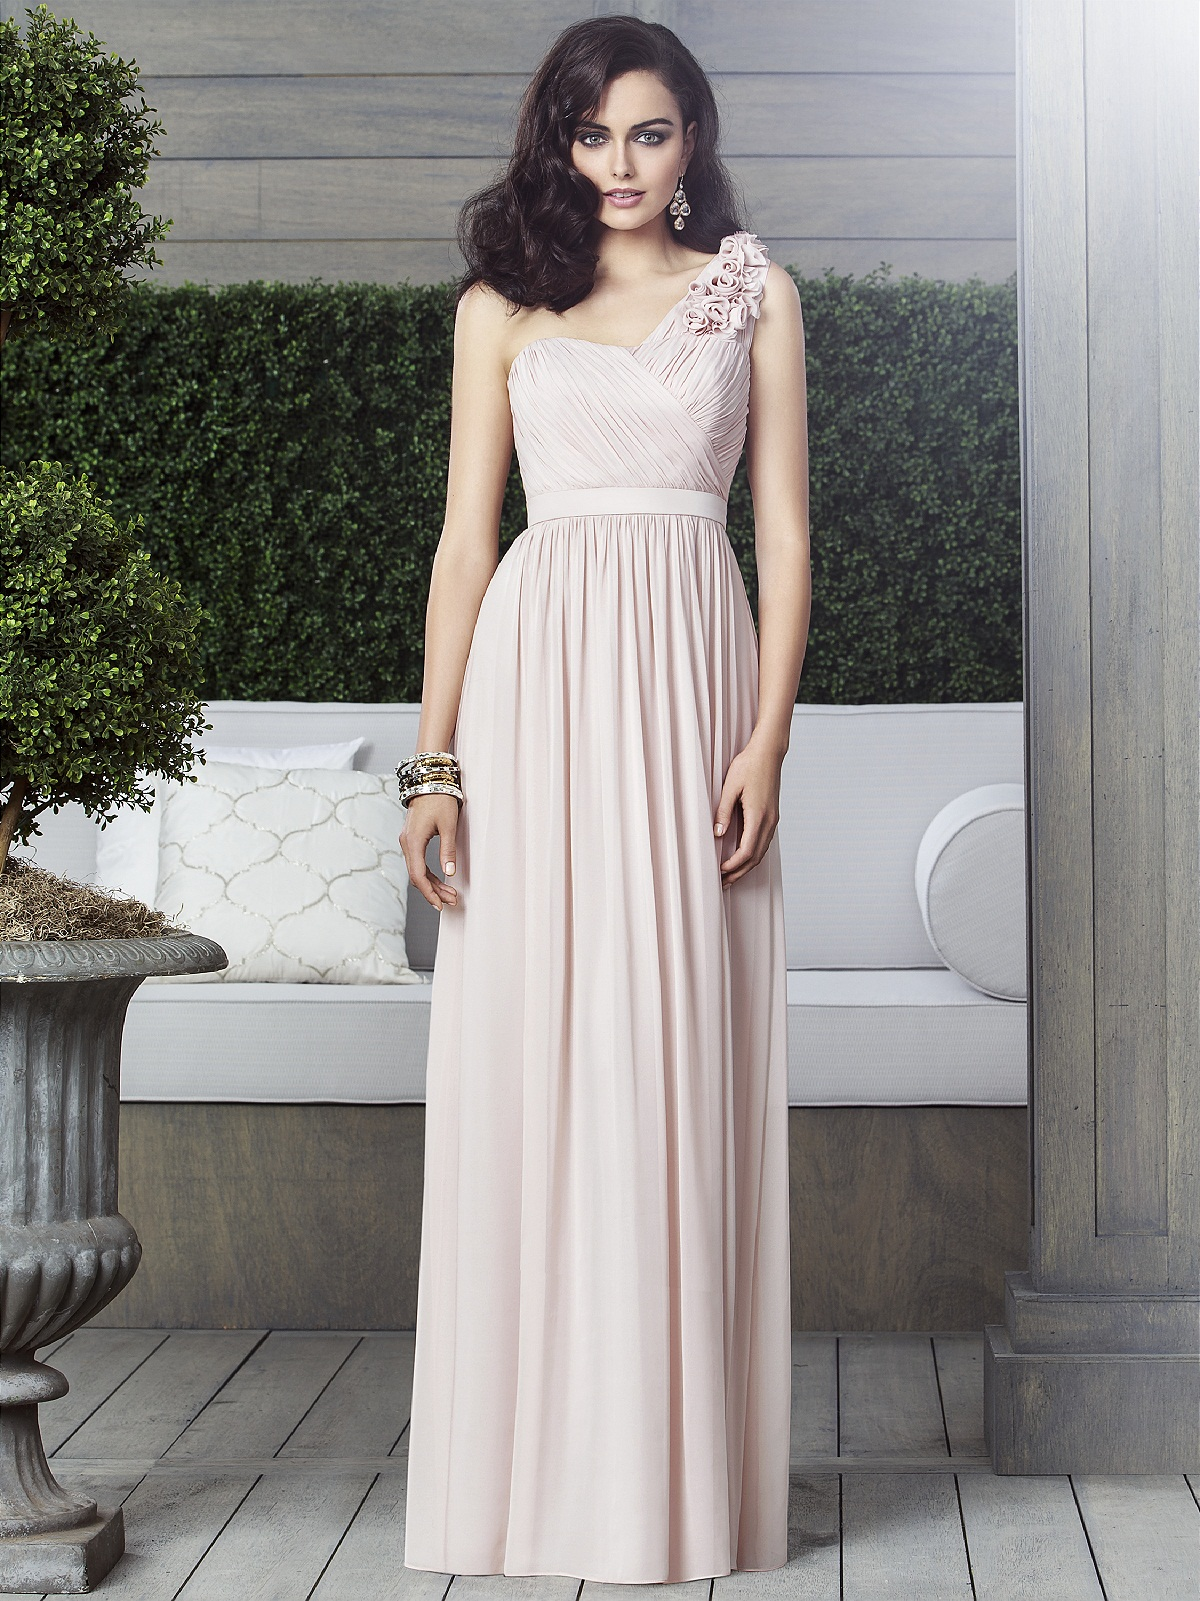 DESSY BRIDESMAID DRESSES|DESSY DRESSES 2909|D2909|THE DESSY GROUP ...